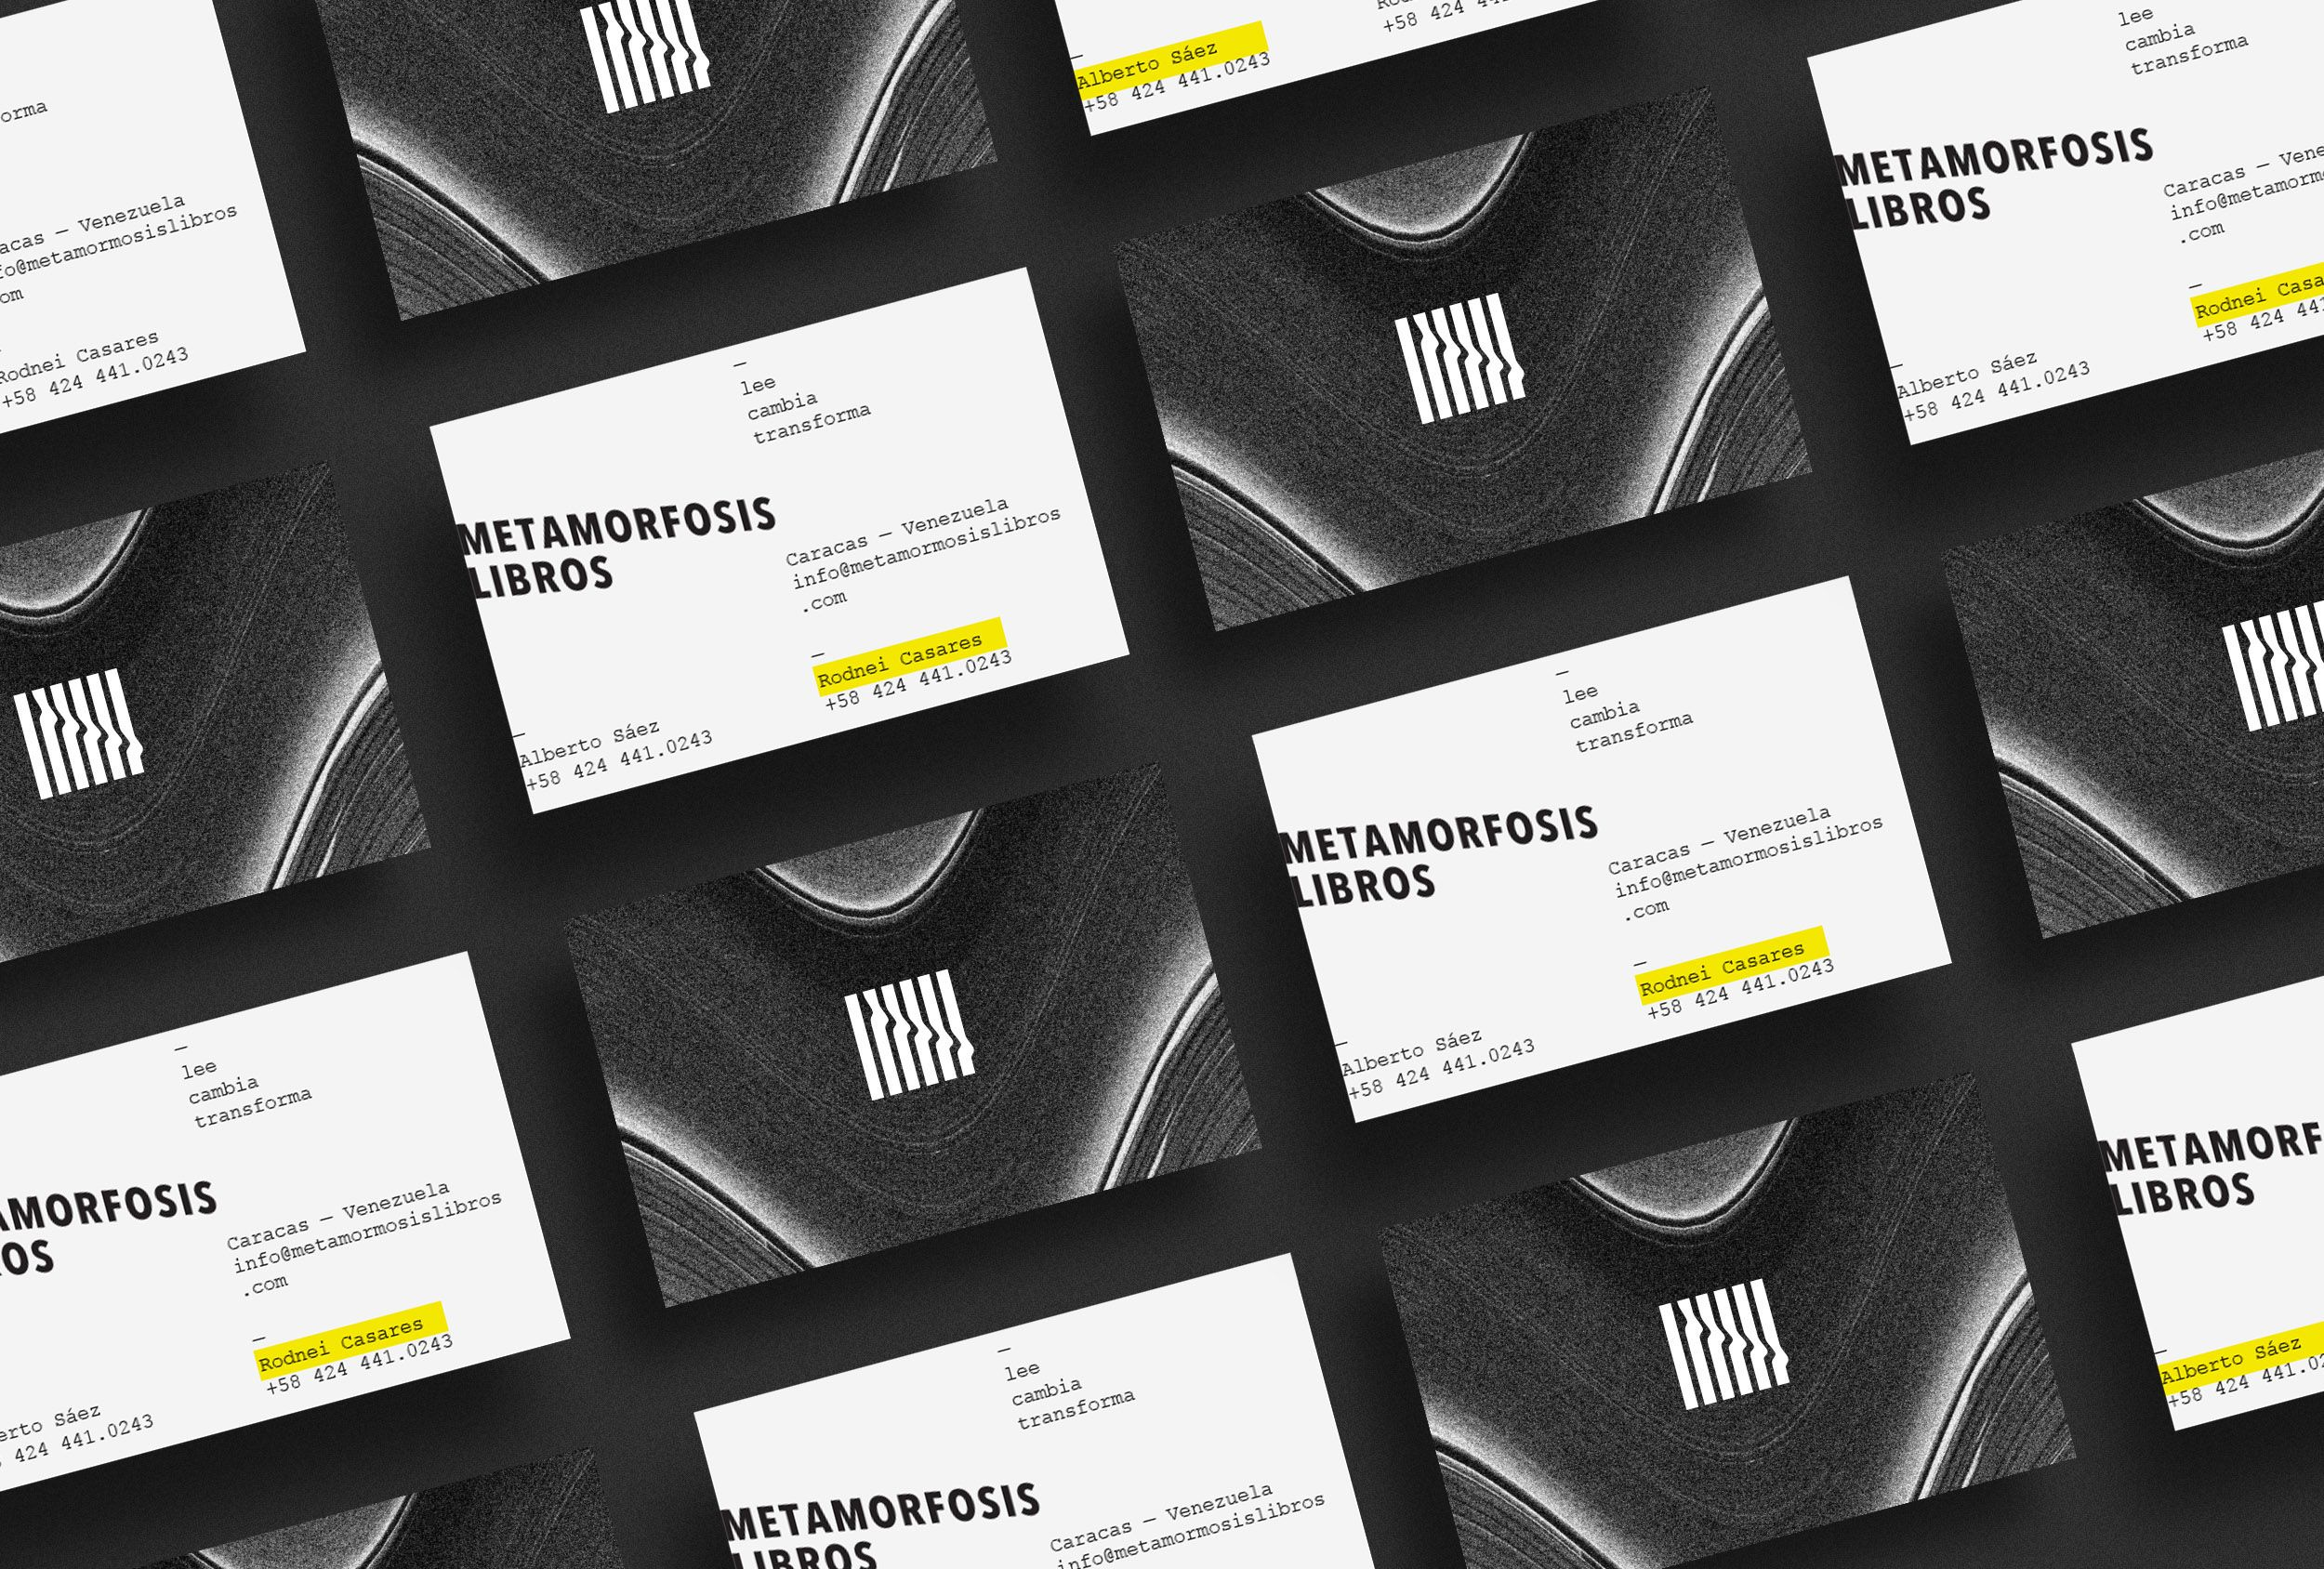 Metamorfosis libros is a startup dedicated to the online purchase metamorfosis libros is a startup dedicated to the online purchase and sale of books making shipments worldwide the proposal of metamorphosis is to offer reheart Image collections